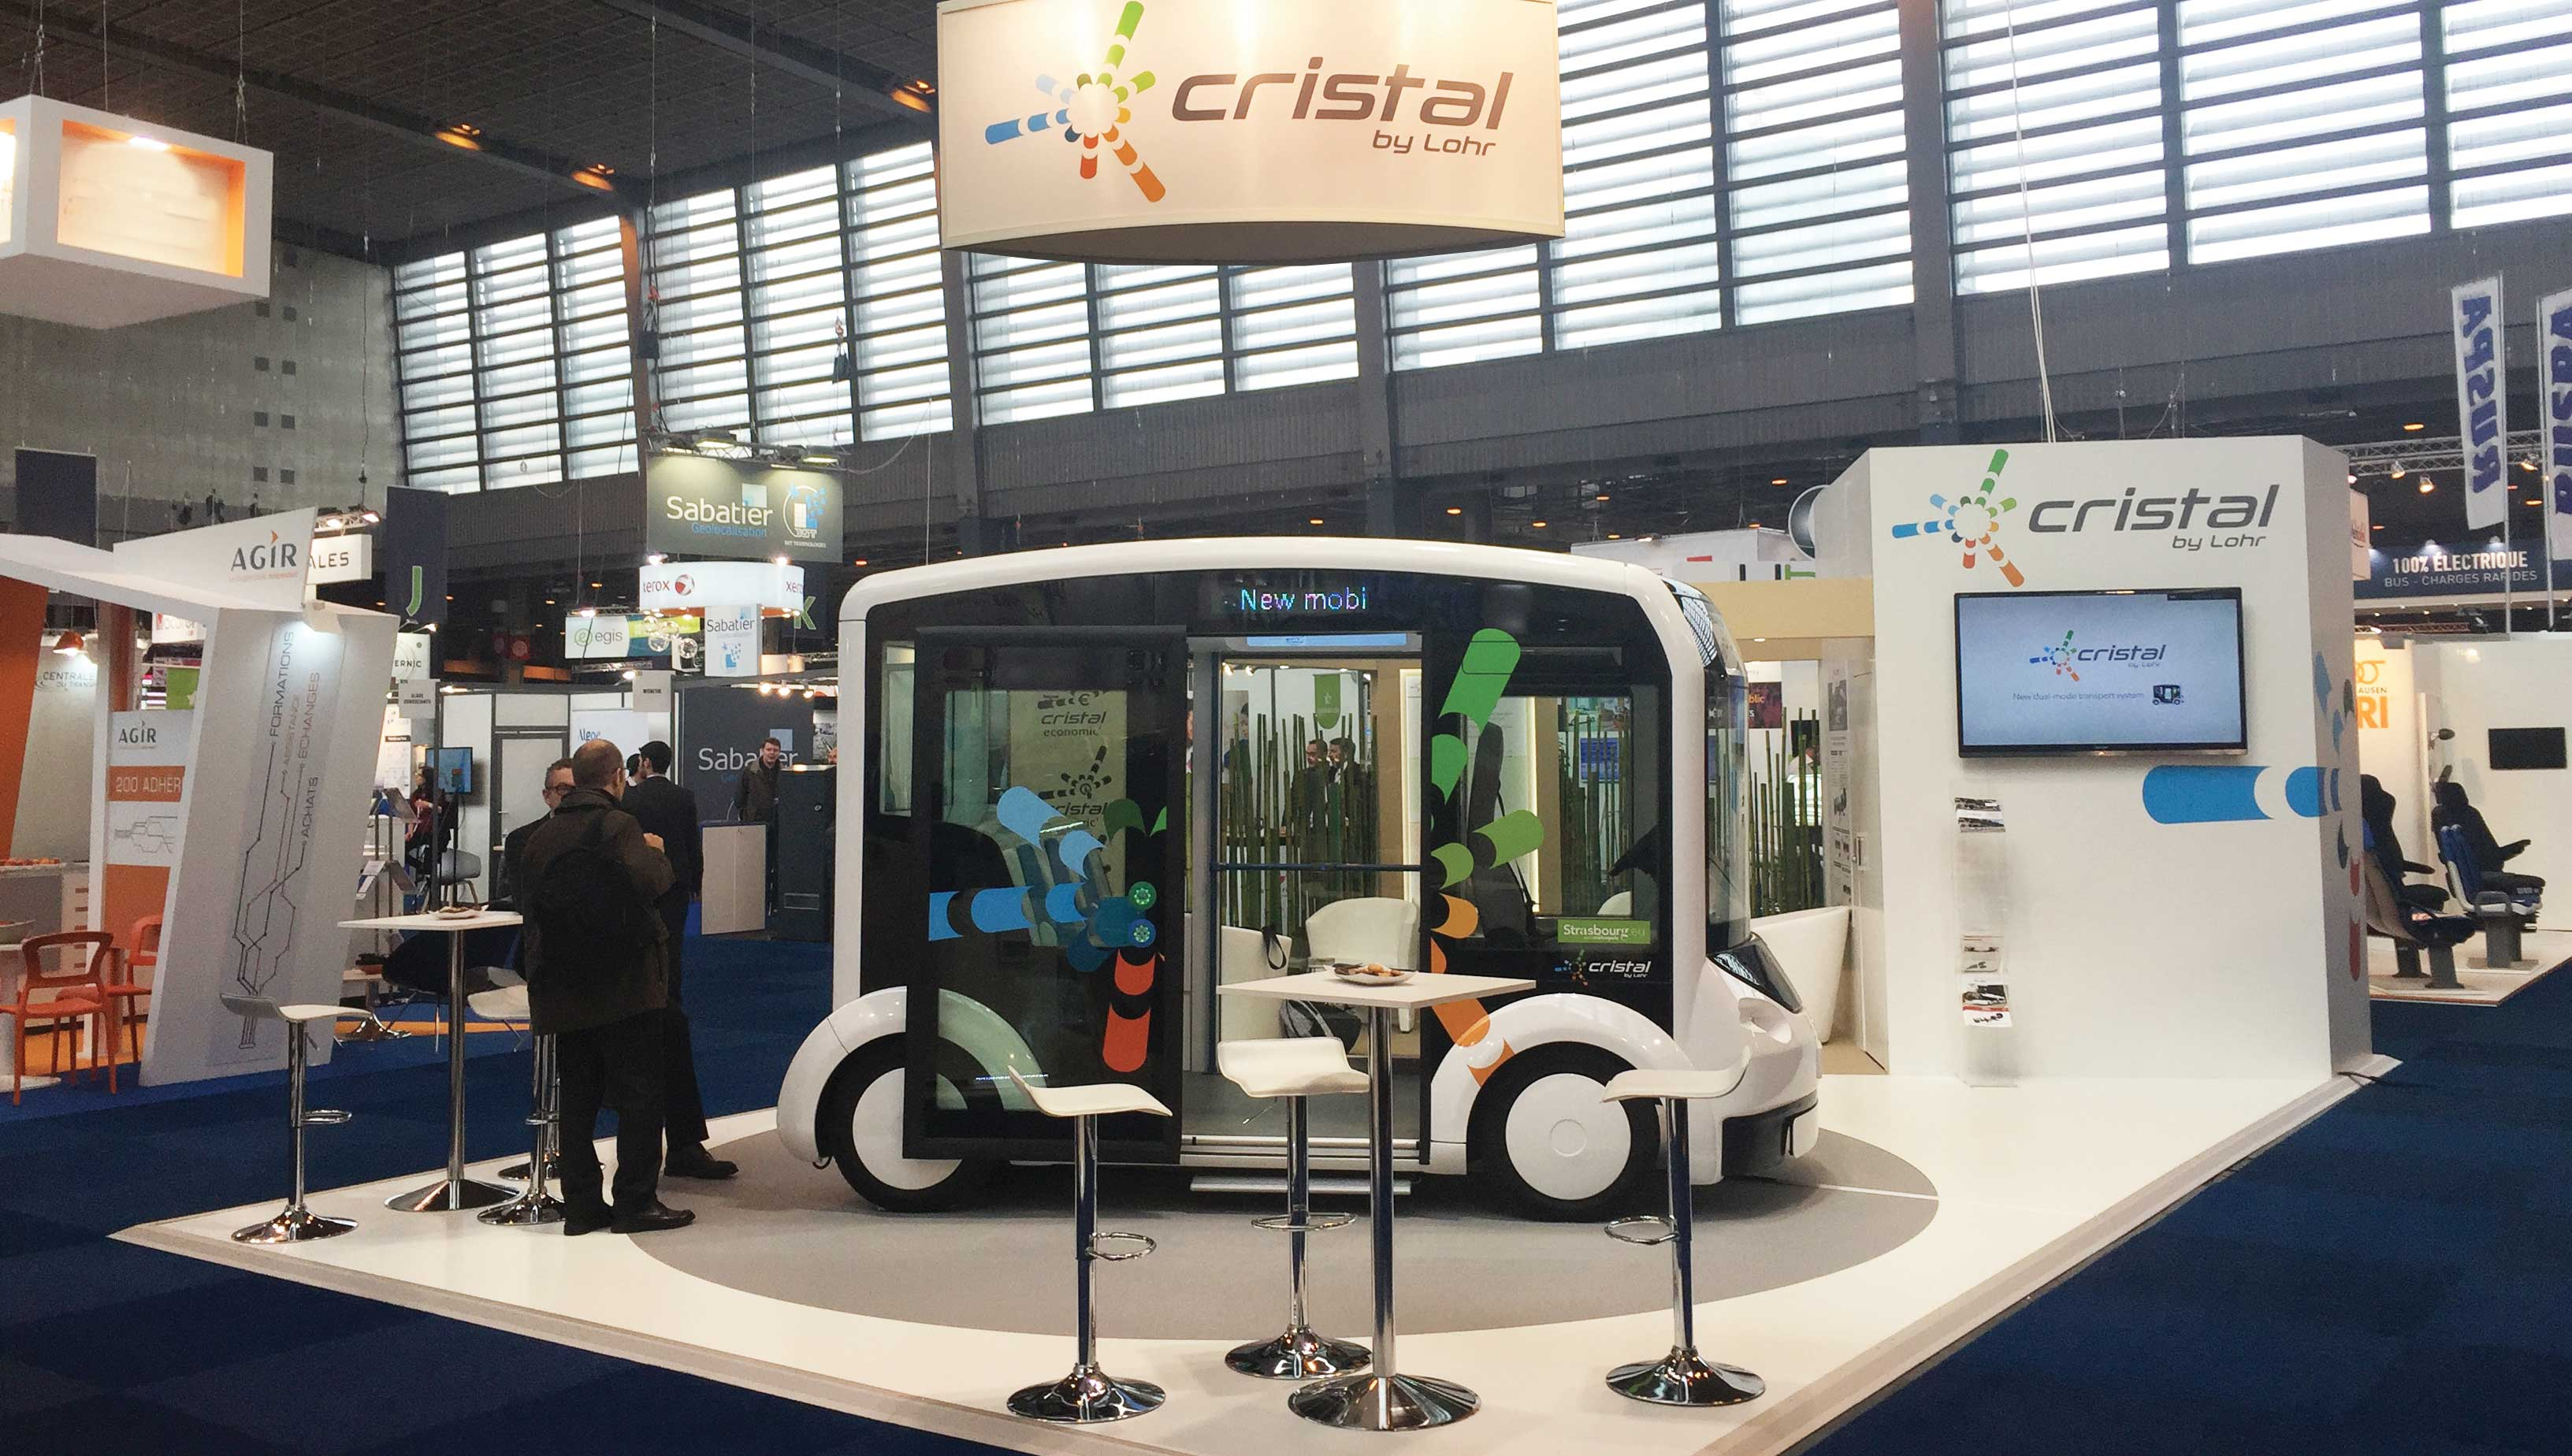 Stand d'exposition Cristal